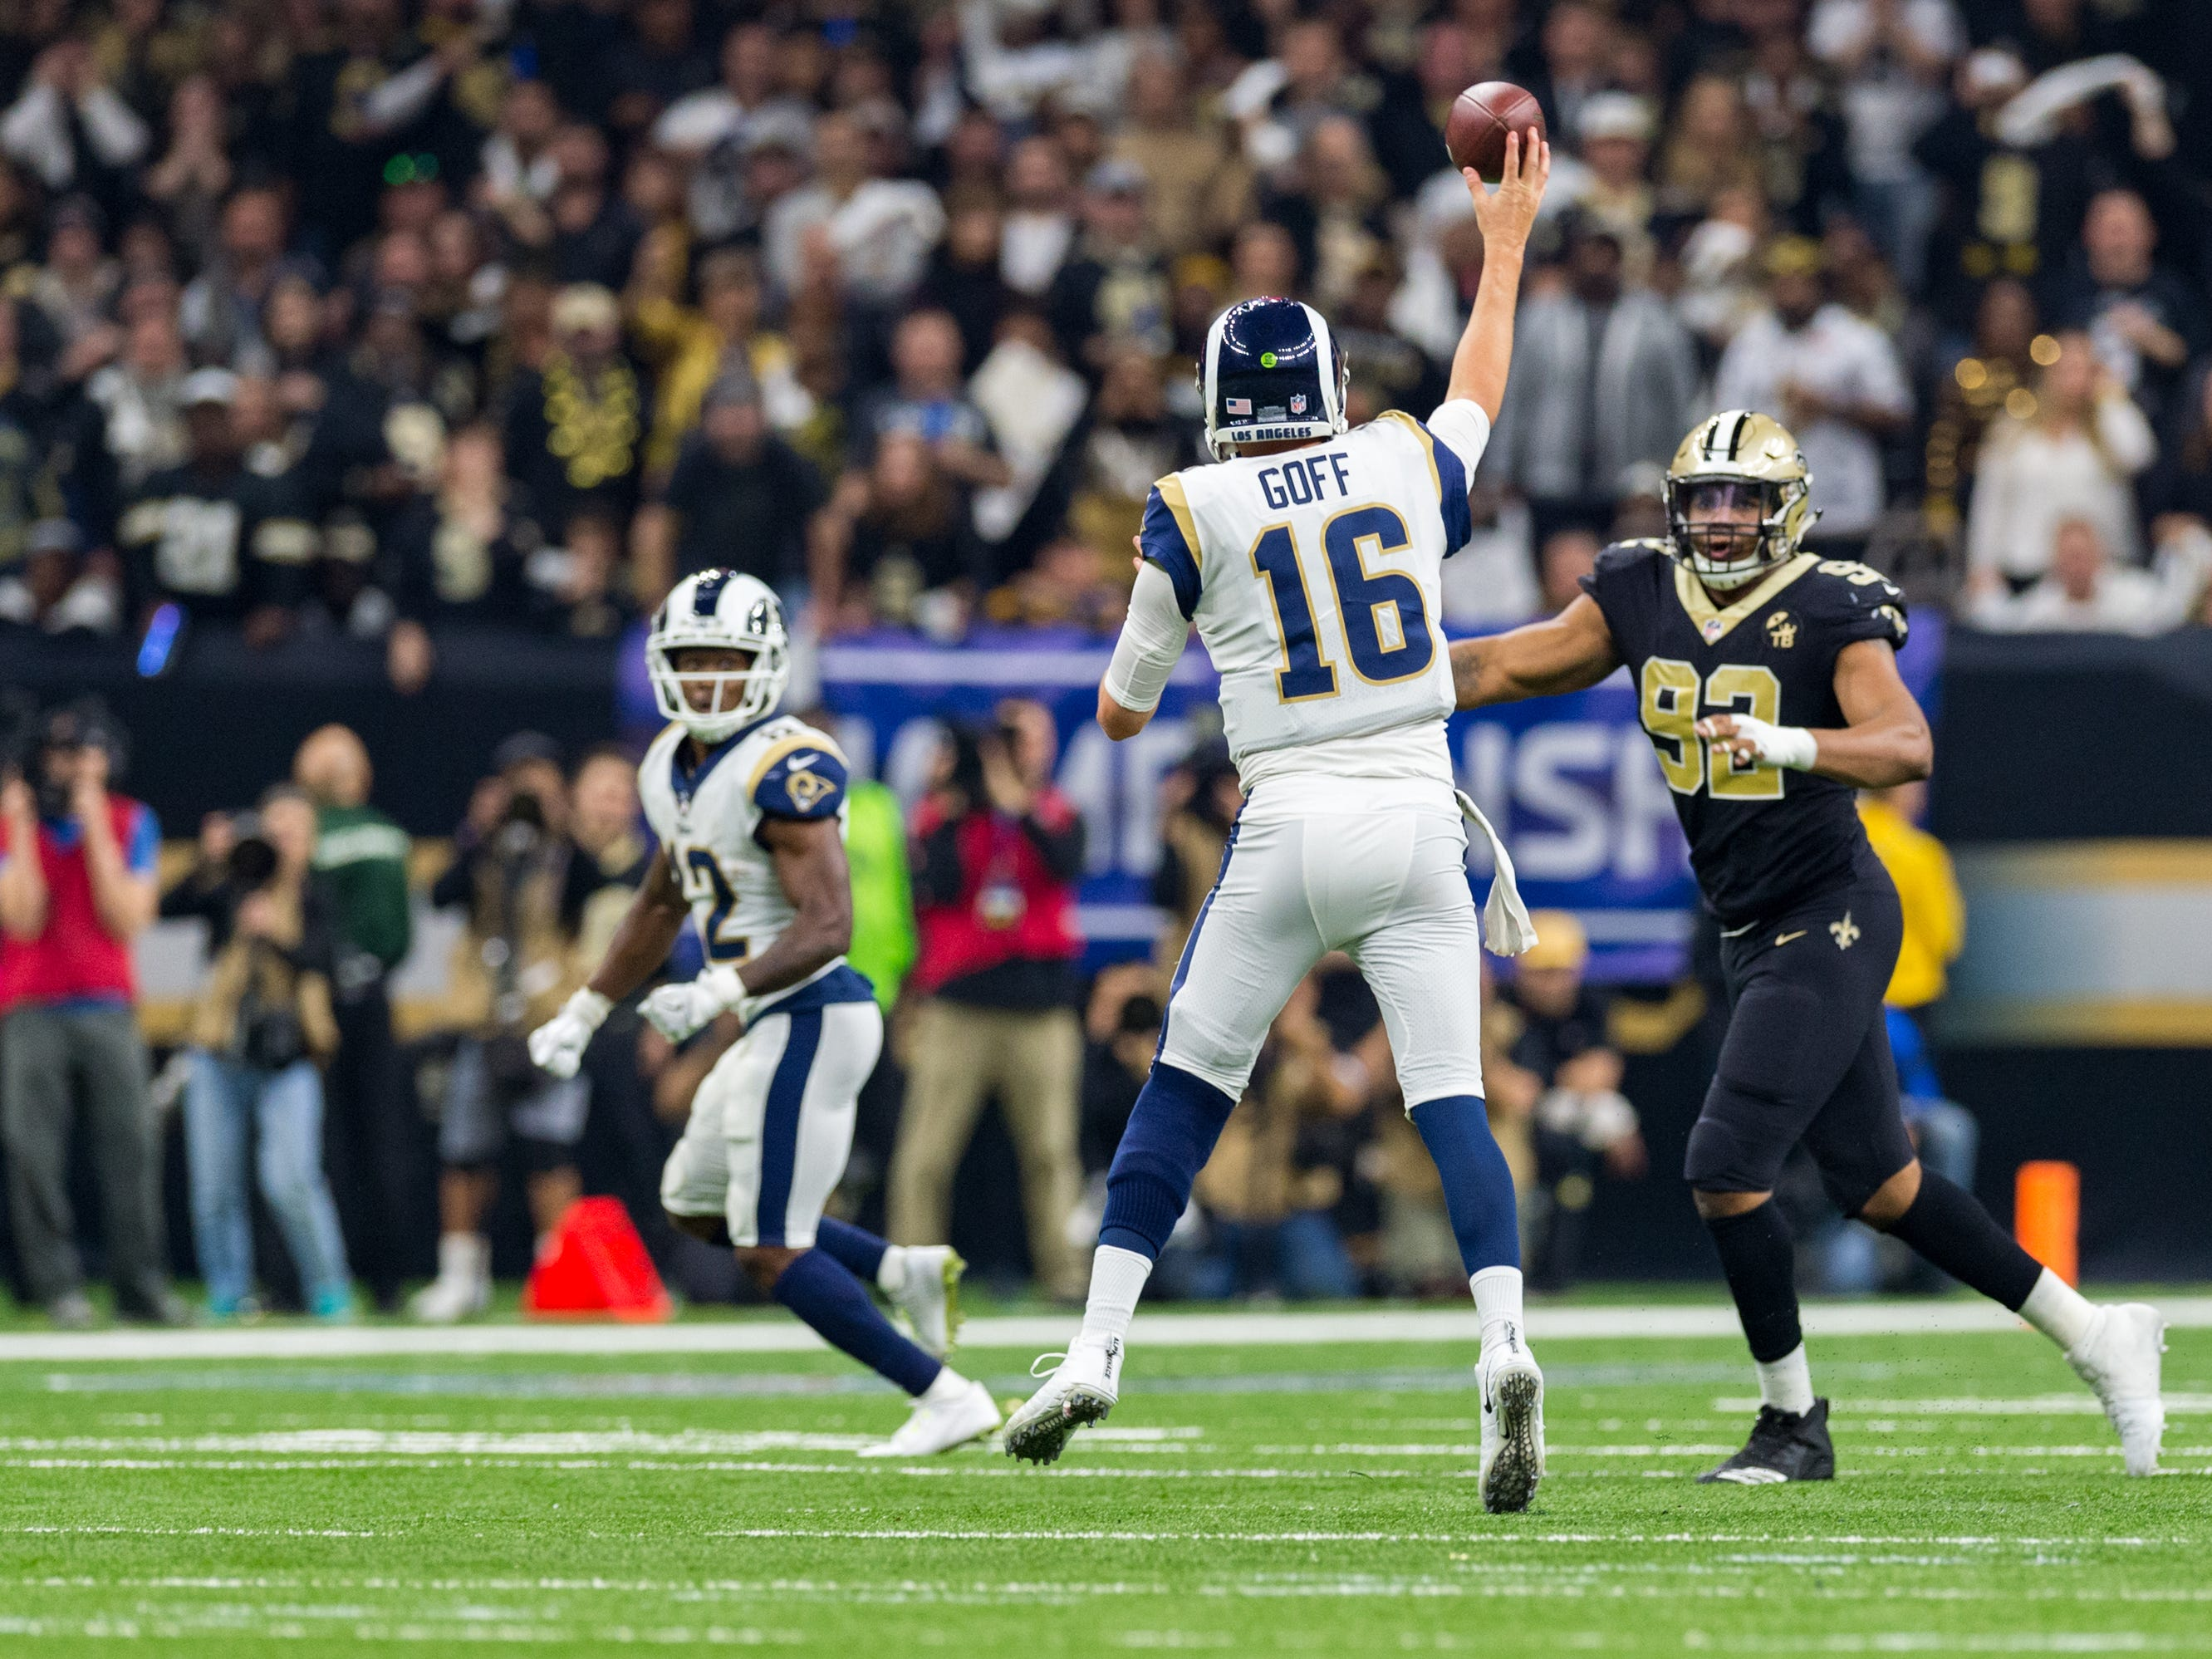 Jared Goff throws a pass to Brandon Cooks during the NFC Championship playoff football game between the New Orleans Saints and the Los Angeles Rams at the Mercedes-Benz Superdome in New Orleans. Sunday, Jan. 20, 2019.